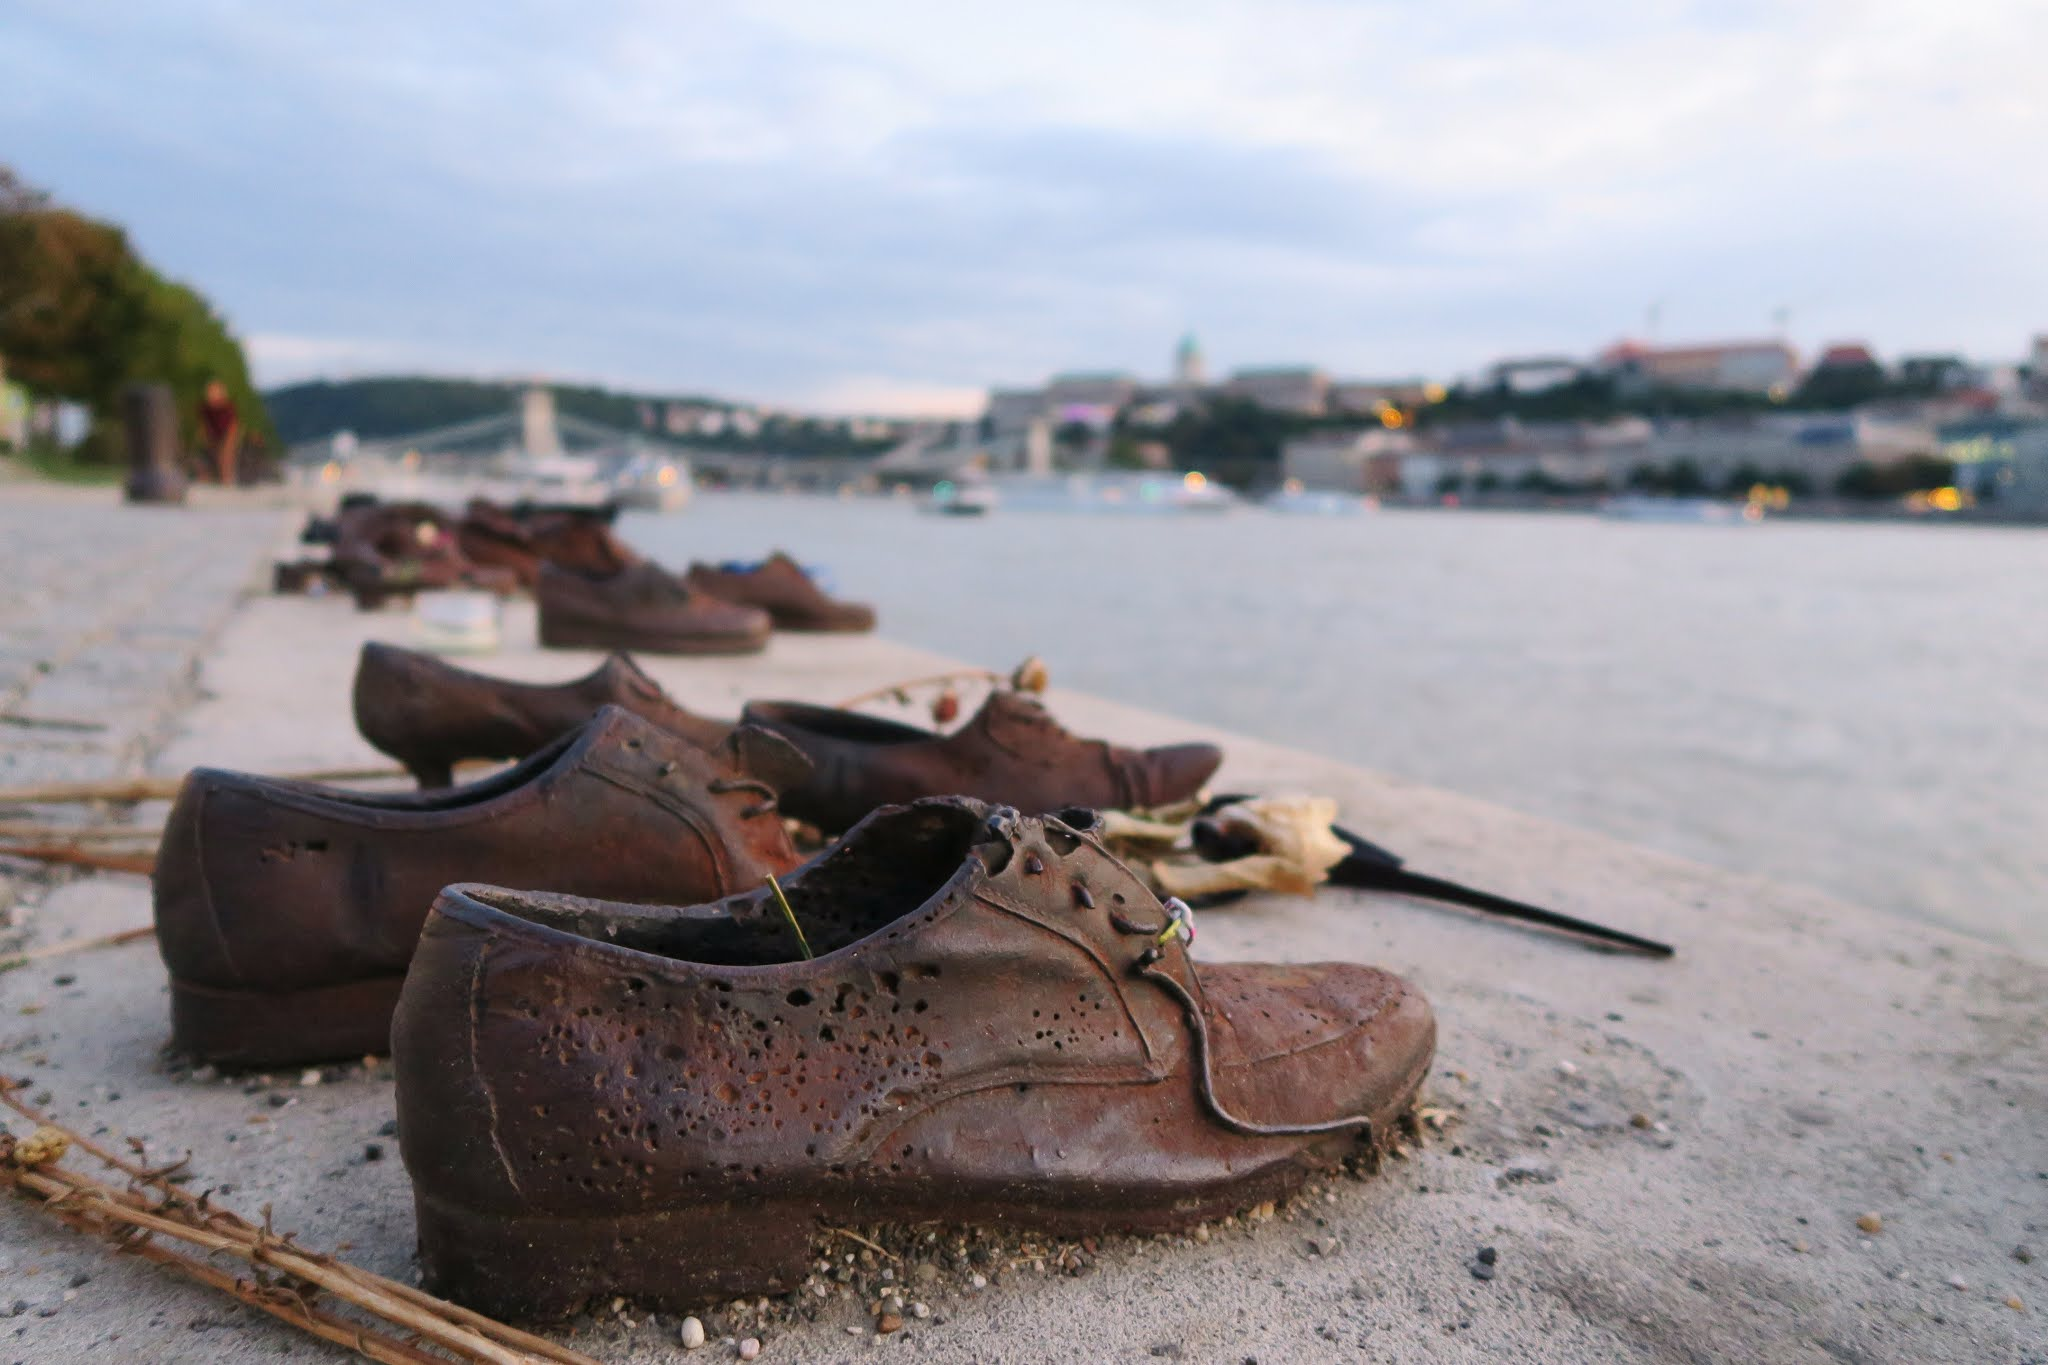 A close up shot of the shoes on the Danube memorial in Budapest